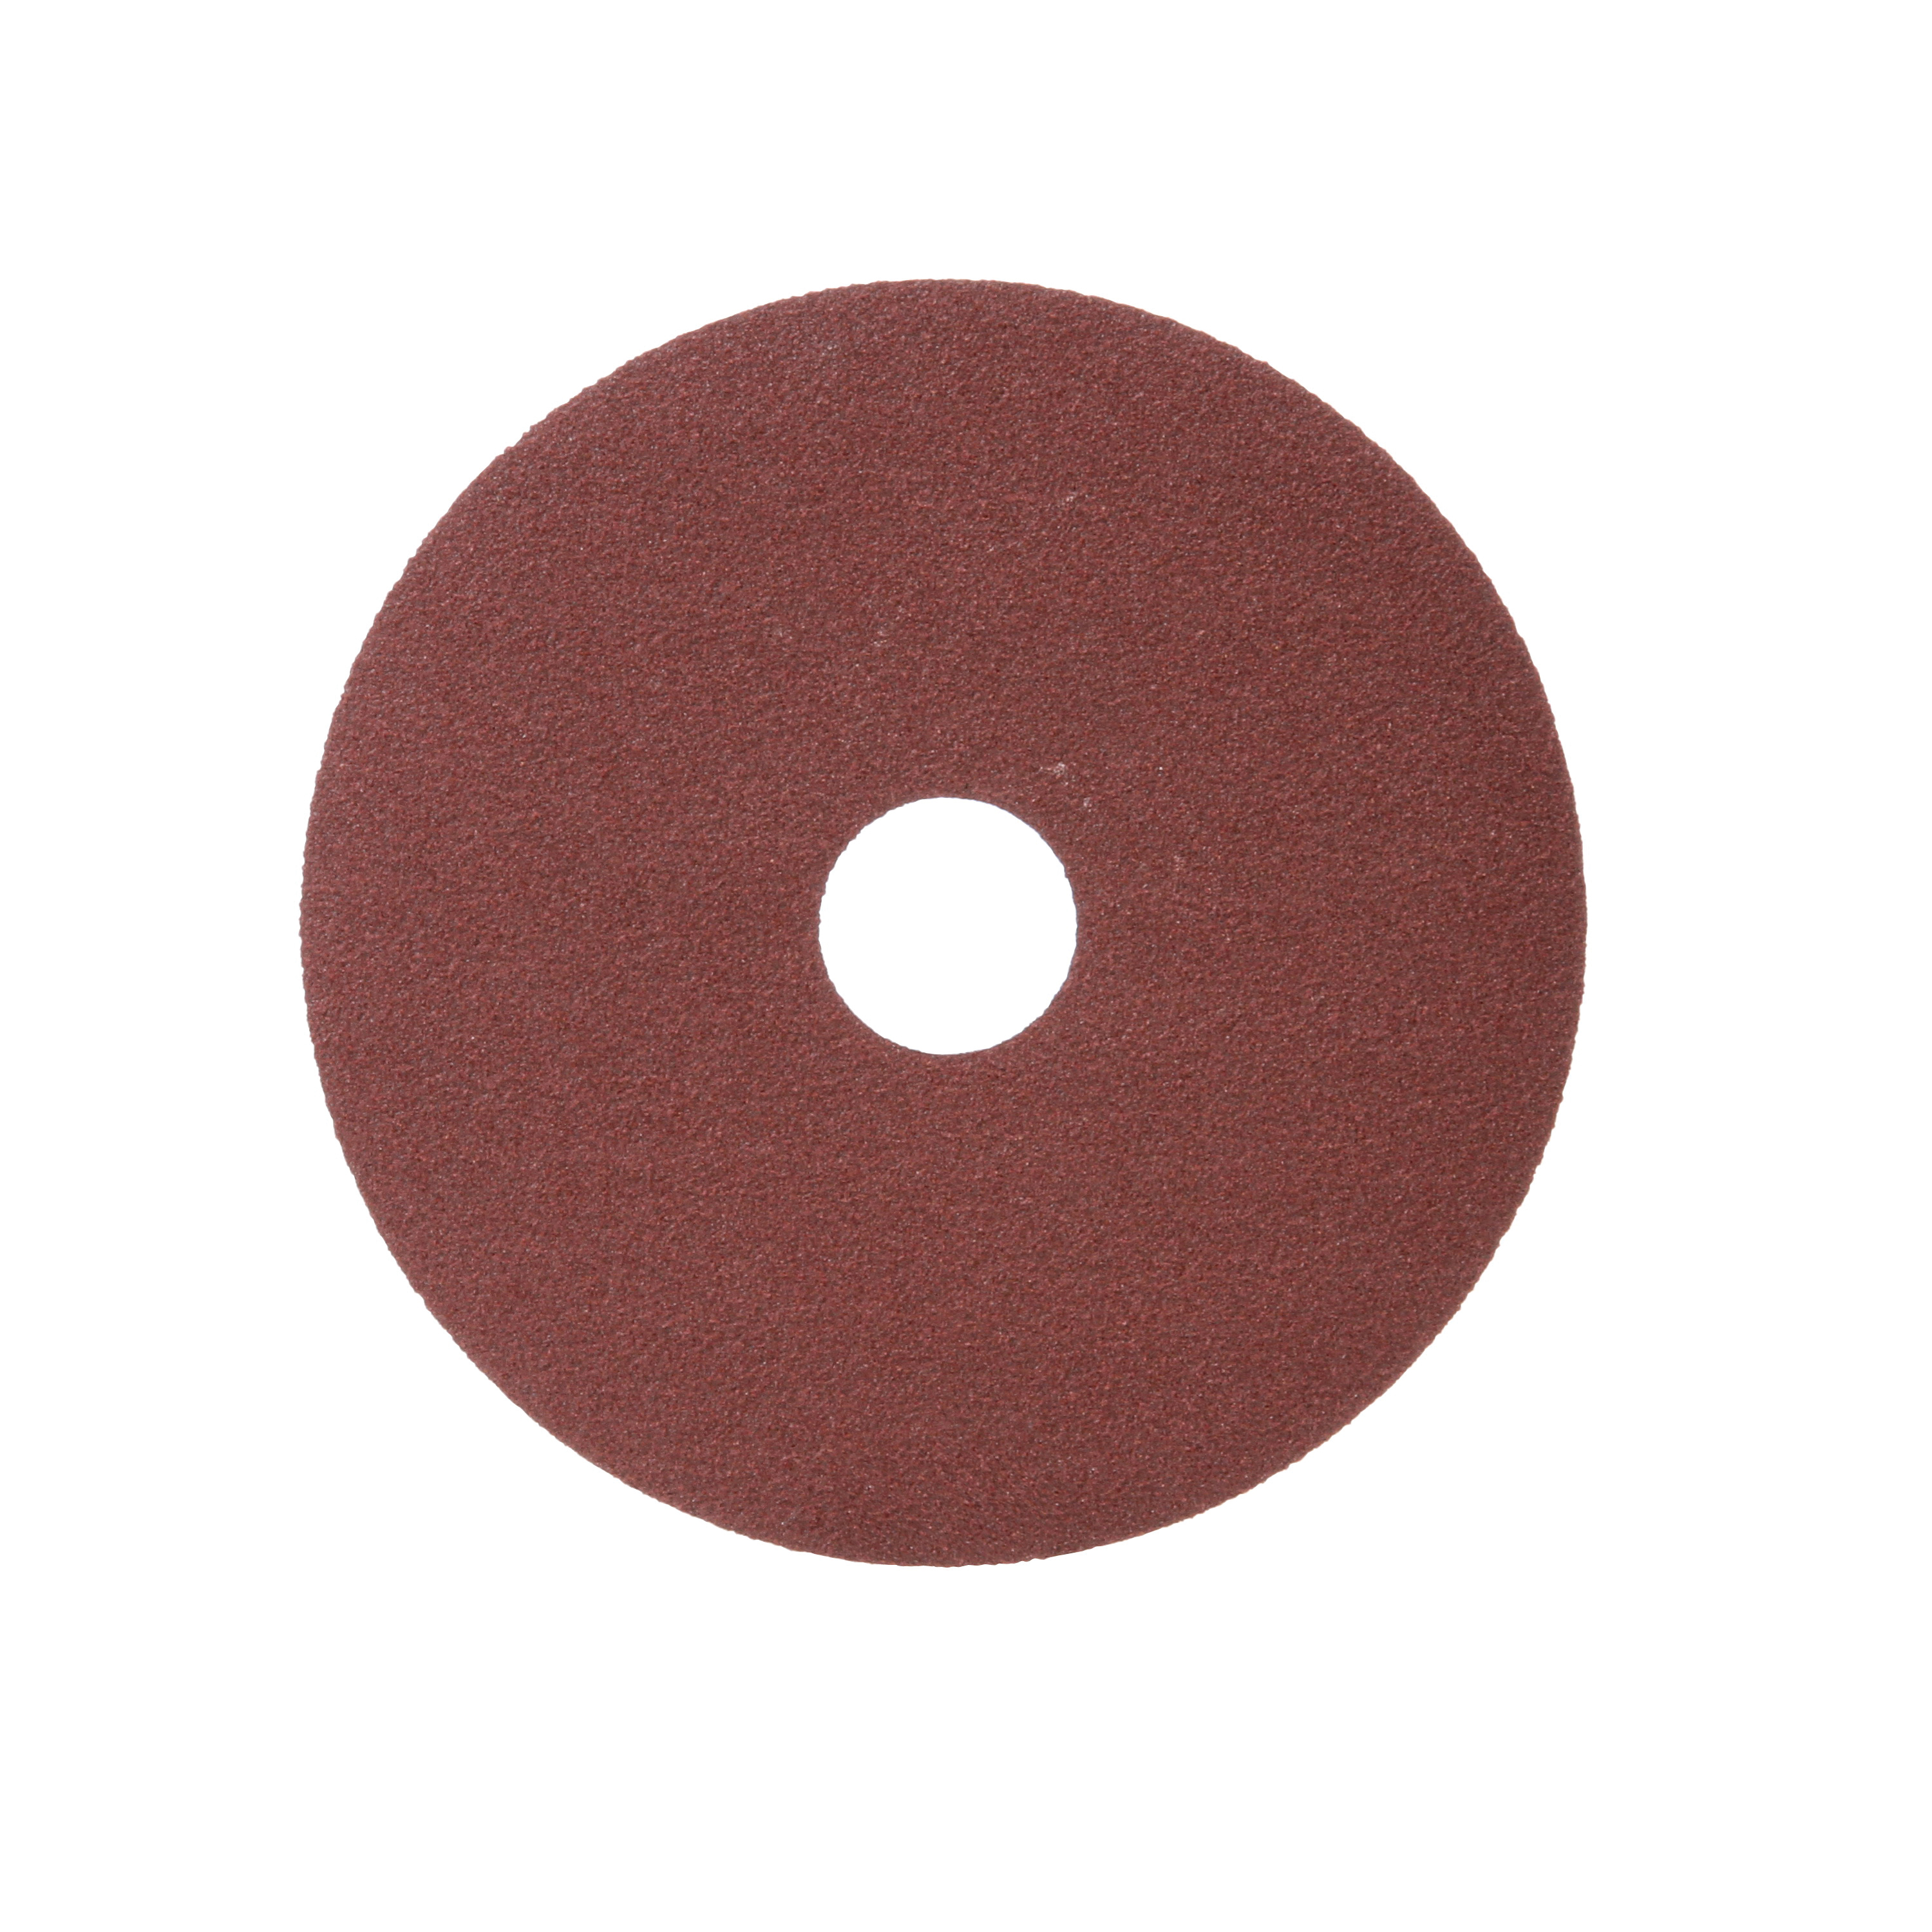 3M™ 051144-77600 Close Coated Abrasive Disc, 4-1/2 in Dia, 7/8 in Center Hole, 100 Grit, Fine Grade, Aluminum Oxide Abrasive, Arbor Attachment